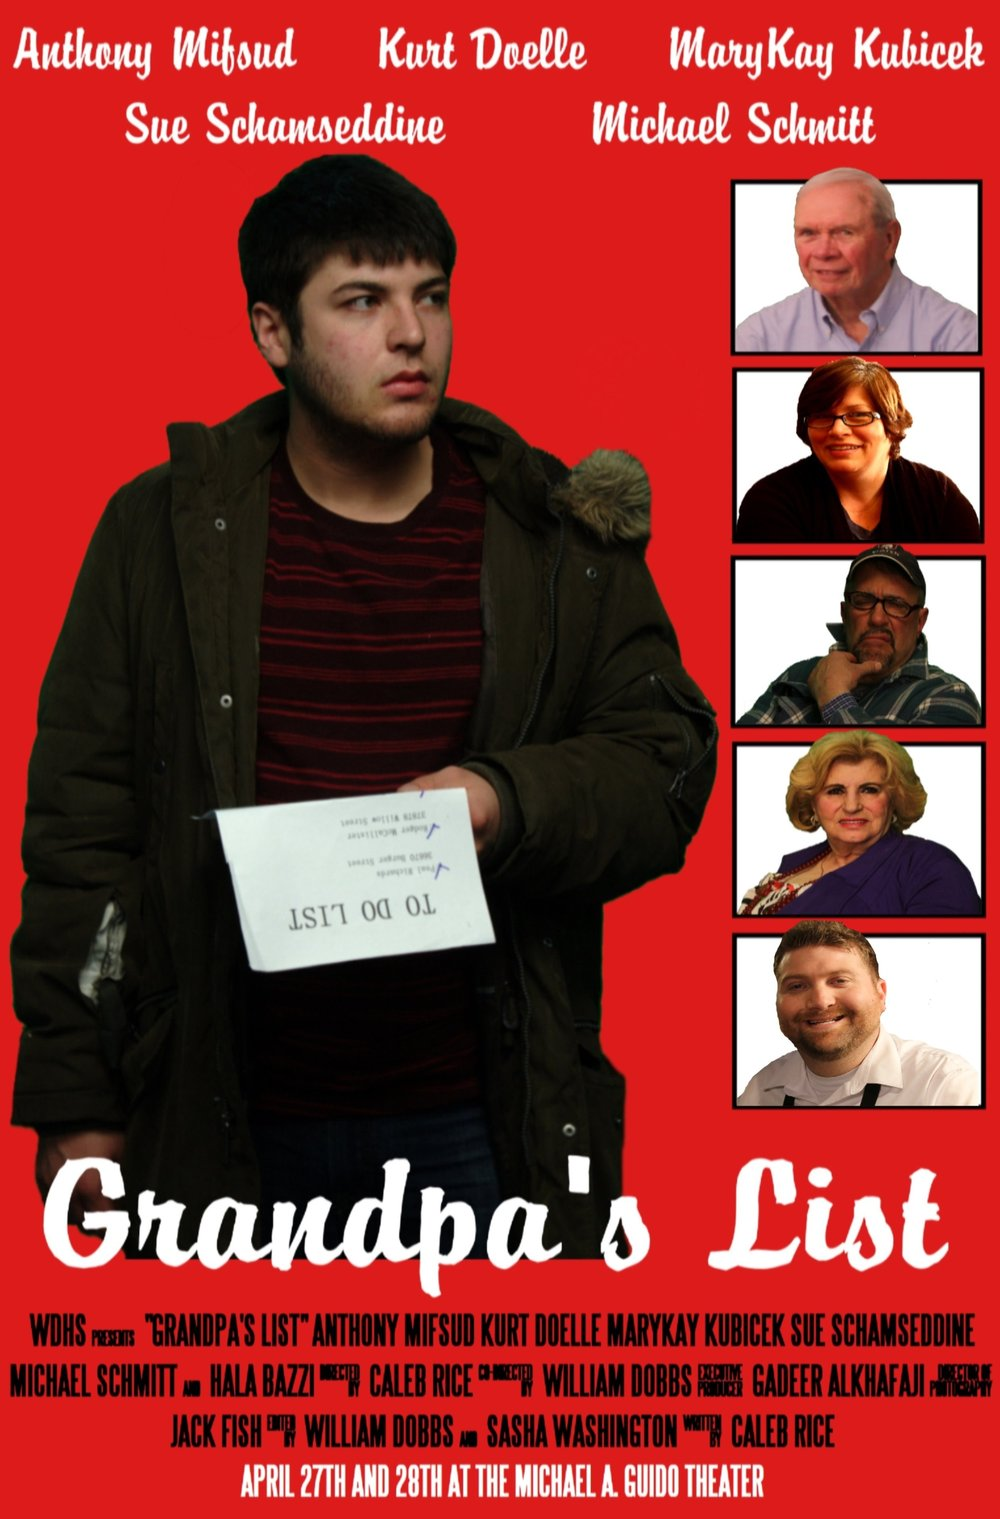 Grandpa's List - Johnny's grandfather just past away and while cleaning out his house, Johnny finds a list with only acts of kindness on it. Feeling as though he did't really know who his grandfather was, Johnny performs all the tasks on the list to feel a little more connected.http://www.imdb.com/title/tt6793970/?ref_=fn_al_tt_1Cast: Anthony Mifsud,Kurt Doelle, Sue Shamseddine, MaryKay Kubicek, Michael Schmitt, Hala Bazzi, Ronald Jones, Susan Dobbs, Troy OgleCrew: Caleb Rice - Director/ Writer, William Dobbs - Assistant Director/ Writer/ Camera, Gadeer Alkhafaji - Executive Producer, Elijha Jefferson - Producer/ Sound, Jack Fish - Director of Photography/ Camera, Sema Alsaid - Camera, Angel Goethals - Camera/ Lighting, Richard Cialone - Lighting, Ali Bazzi - Sound, Davina Loving - Lighting, Kurt Doelle -Sound, Madison Murdoch - Preproduction Producer, Luke Levangie - LightingSpecial Thanks:Cherry Hill Presbyterian Church, Westborn Market, The Kubicek Family, The Alsaid Family, Carl Bryer, La Fork, Ronald and Fay Jones, The Goethals Family